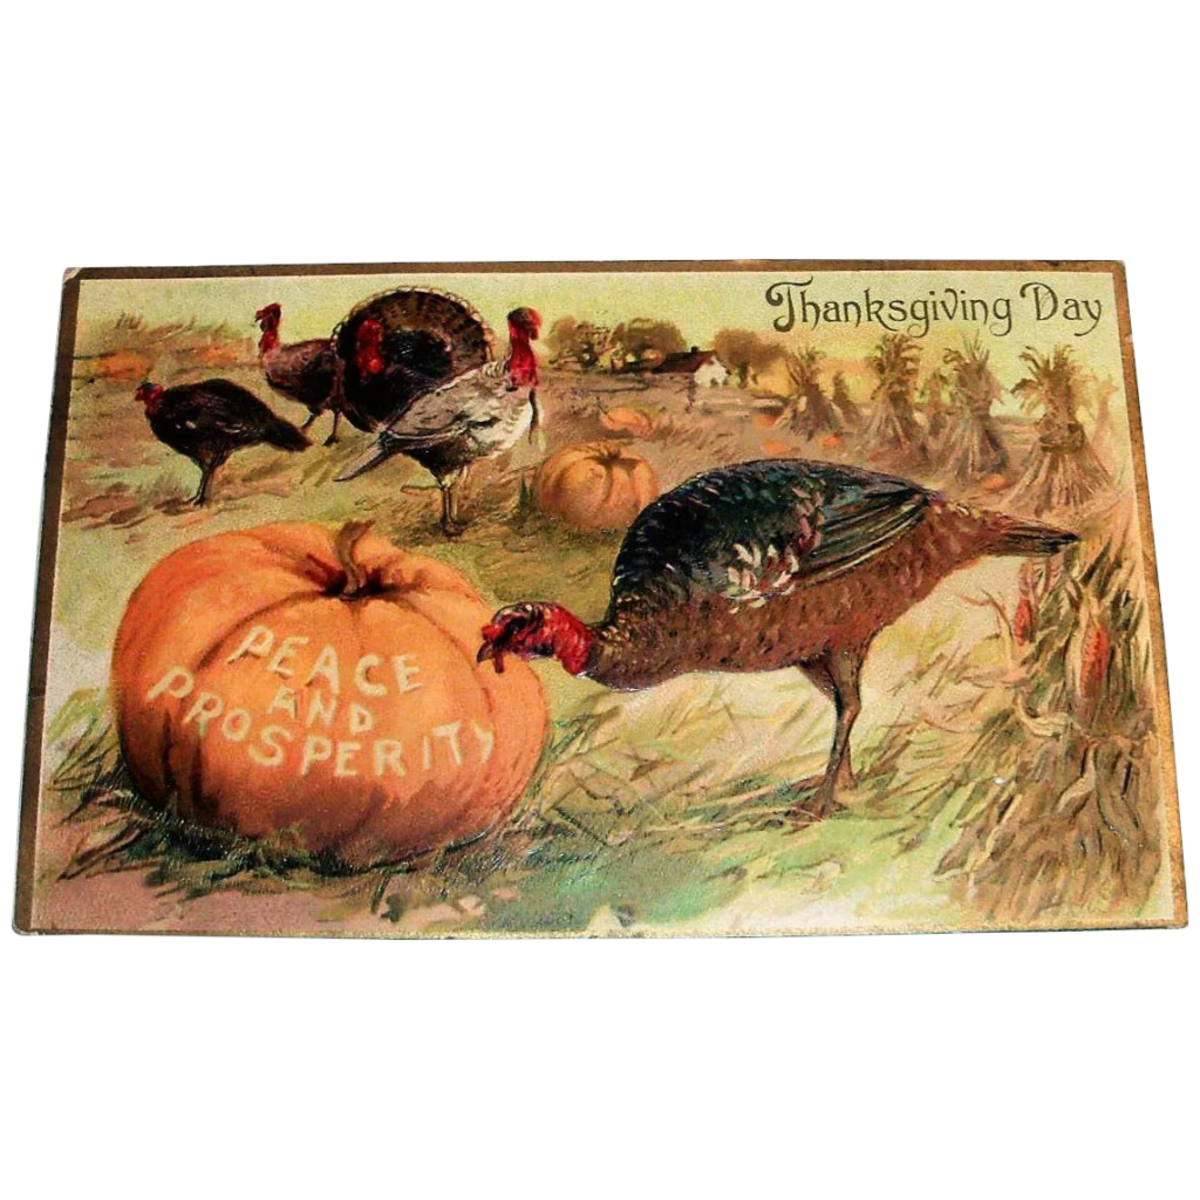 If you collect Thanksgiving postcards, consider scattering a few around your dinner table to add some festive fun. This one is 110 years old and has turkeys feasting on the pumpkins in the field; $13.Courtesy of The Antique Chasers: rubylane.com/shop/theantiquechasers